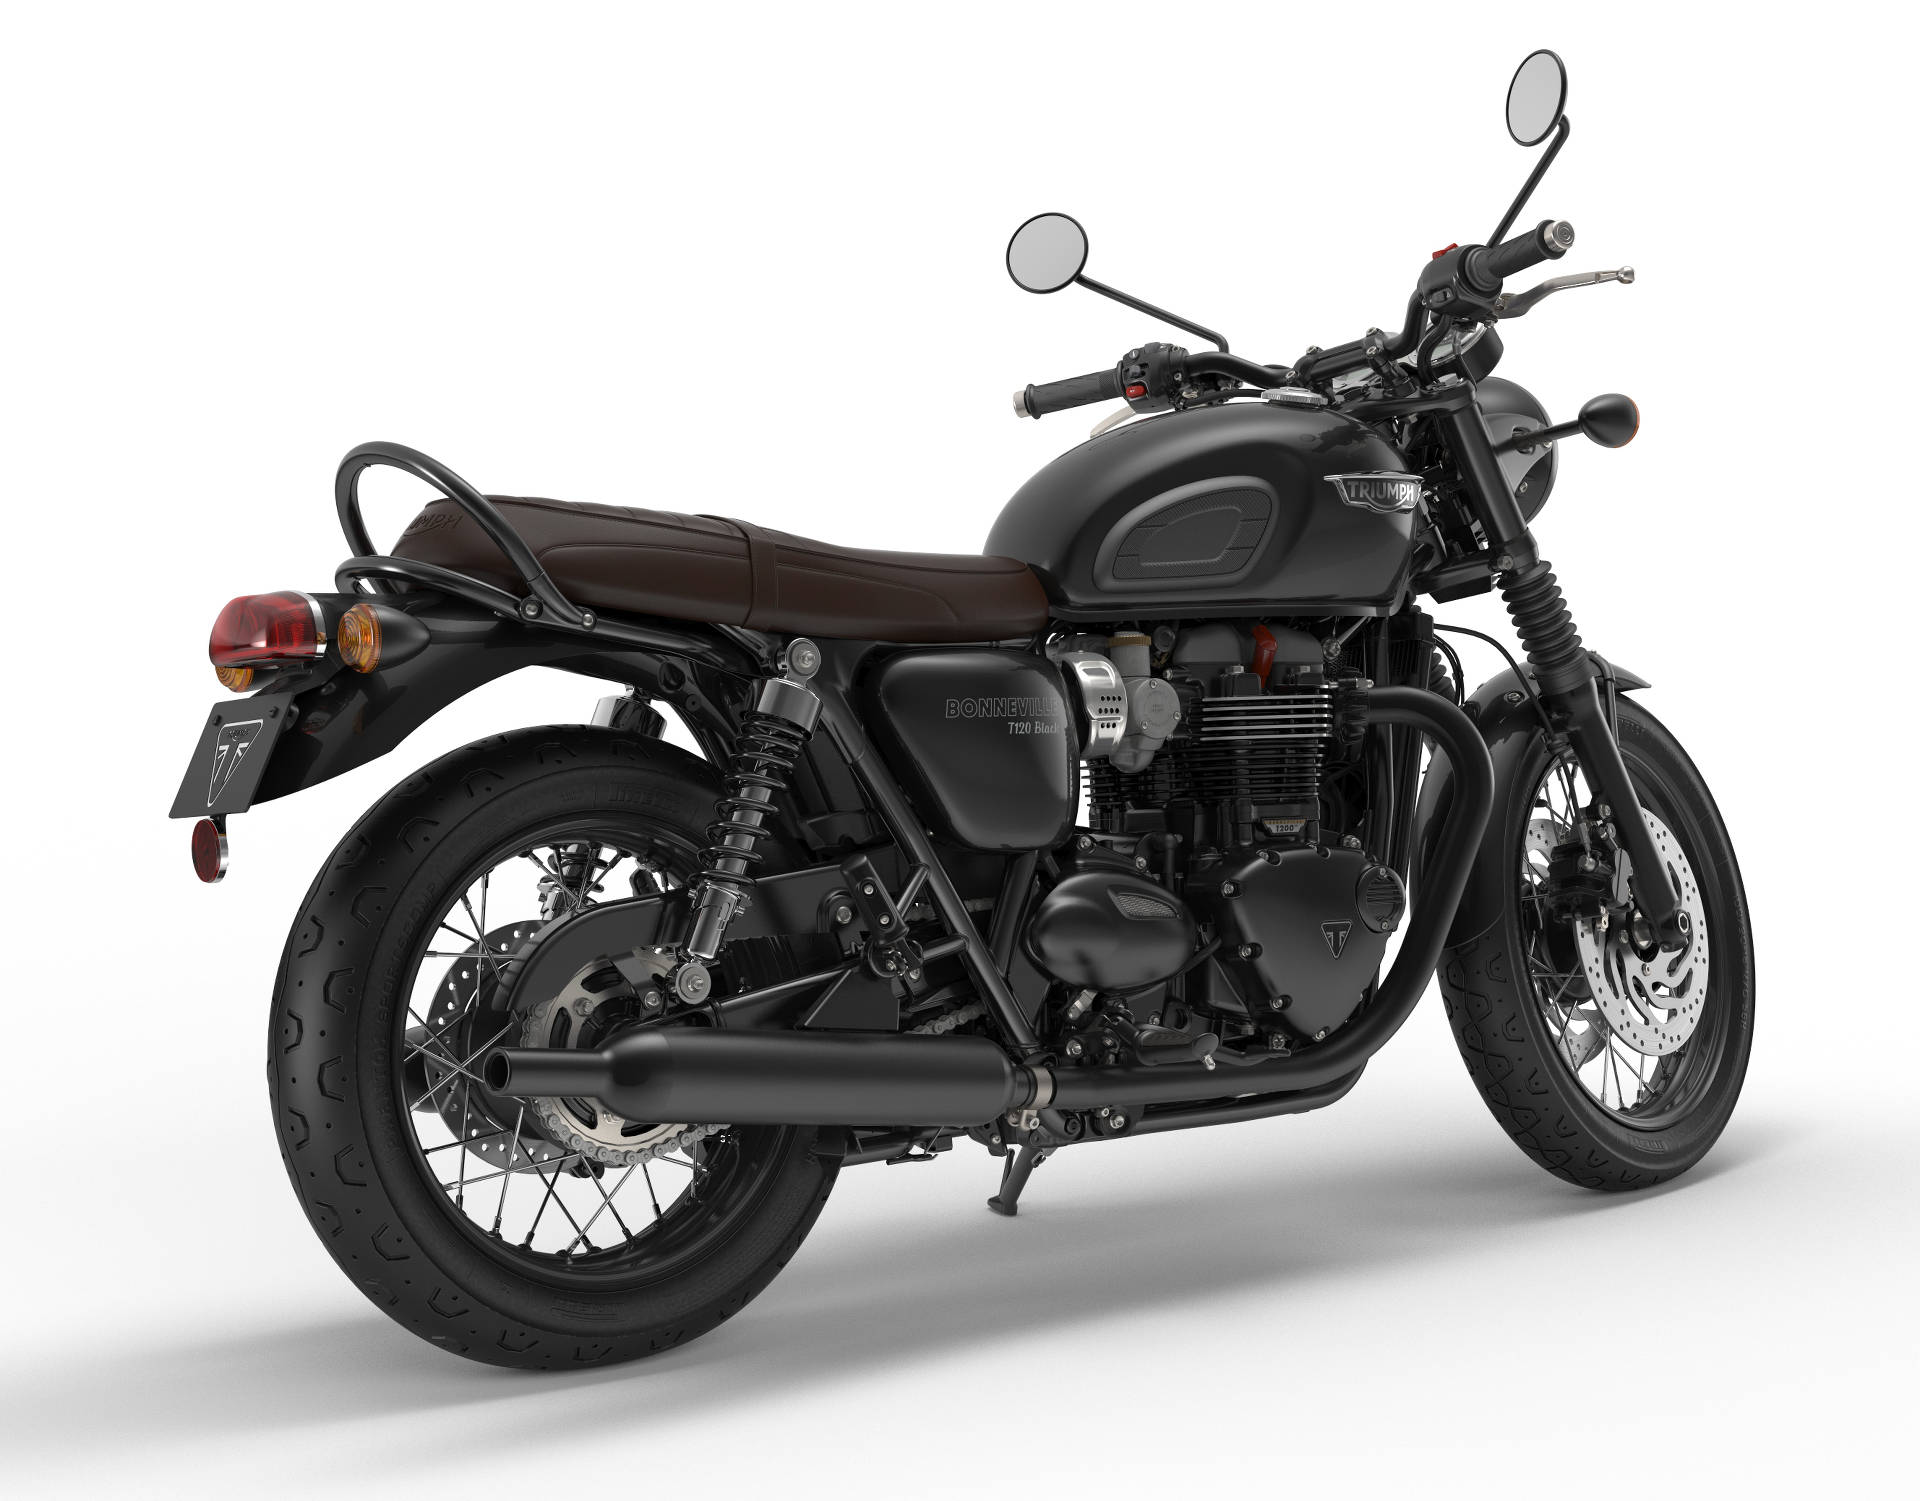 Triumph Unveils New Liquid Cooled Bonneville Family With 1200cc And Wiring Harness For 1971 Motorcycle T120